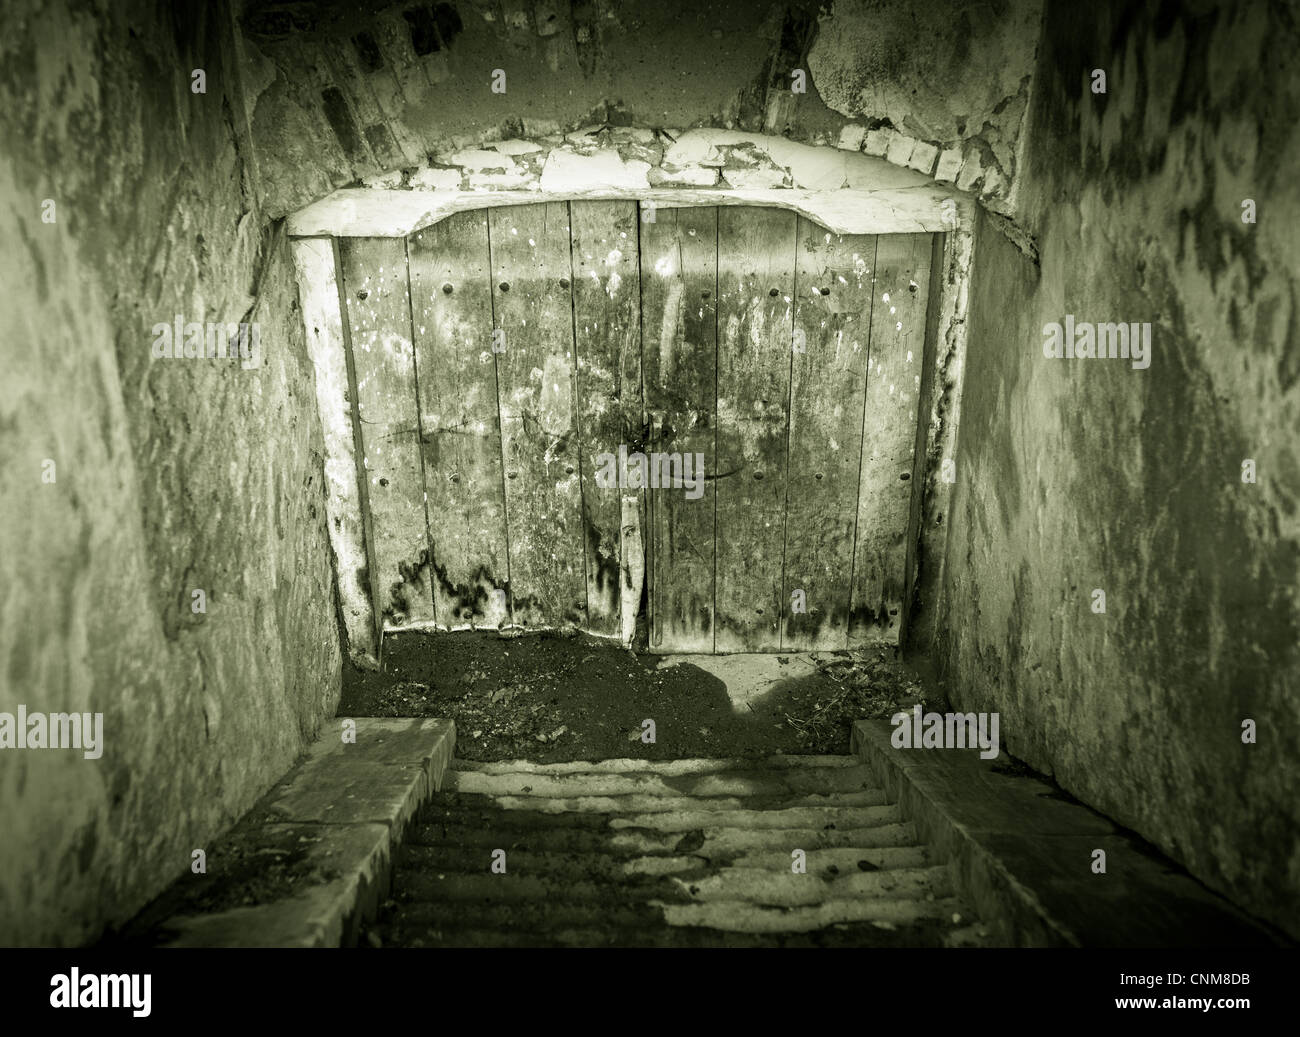 Creepy looking grunge basement door with stairs - Stock Image